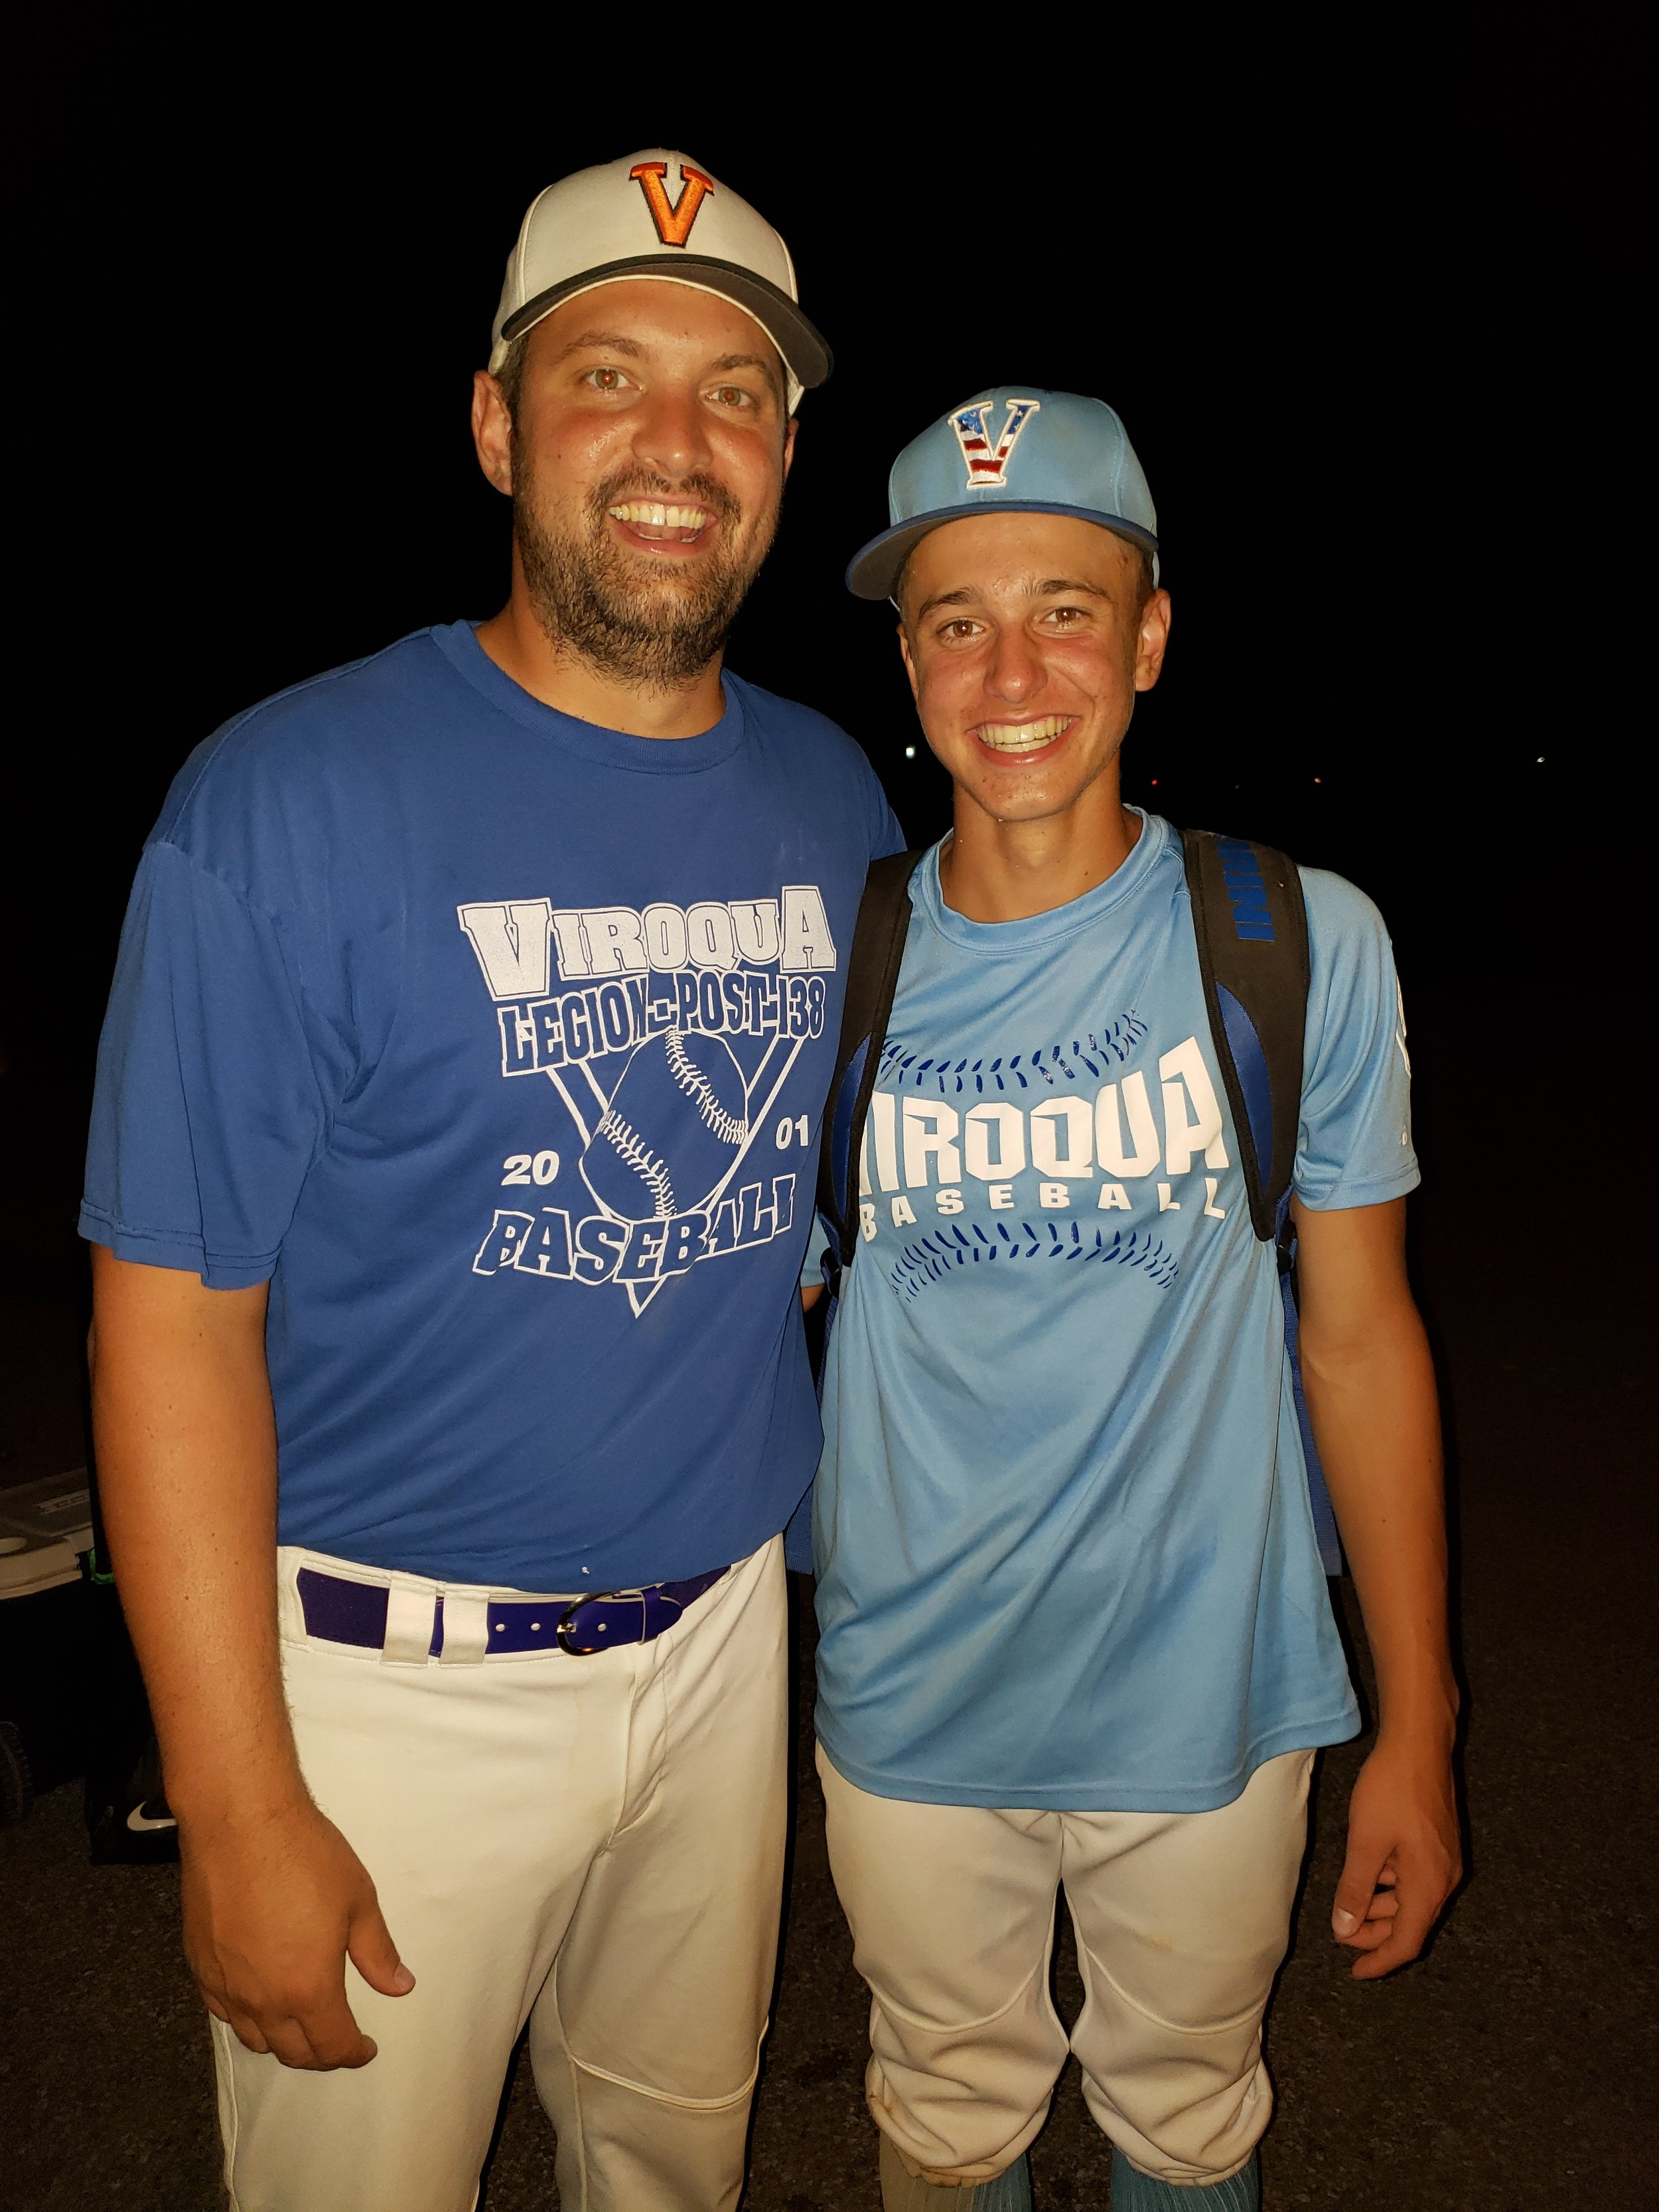 tim and his nephew playing together in an alumni baseball tournament